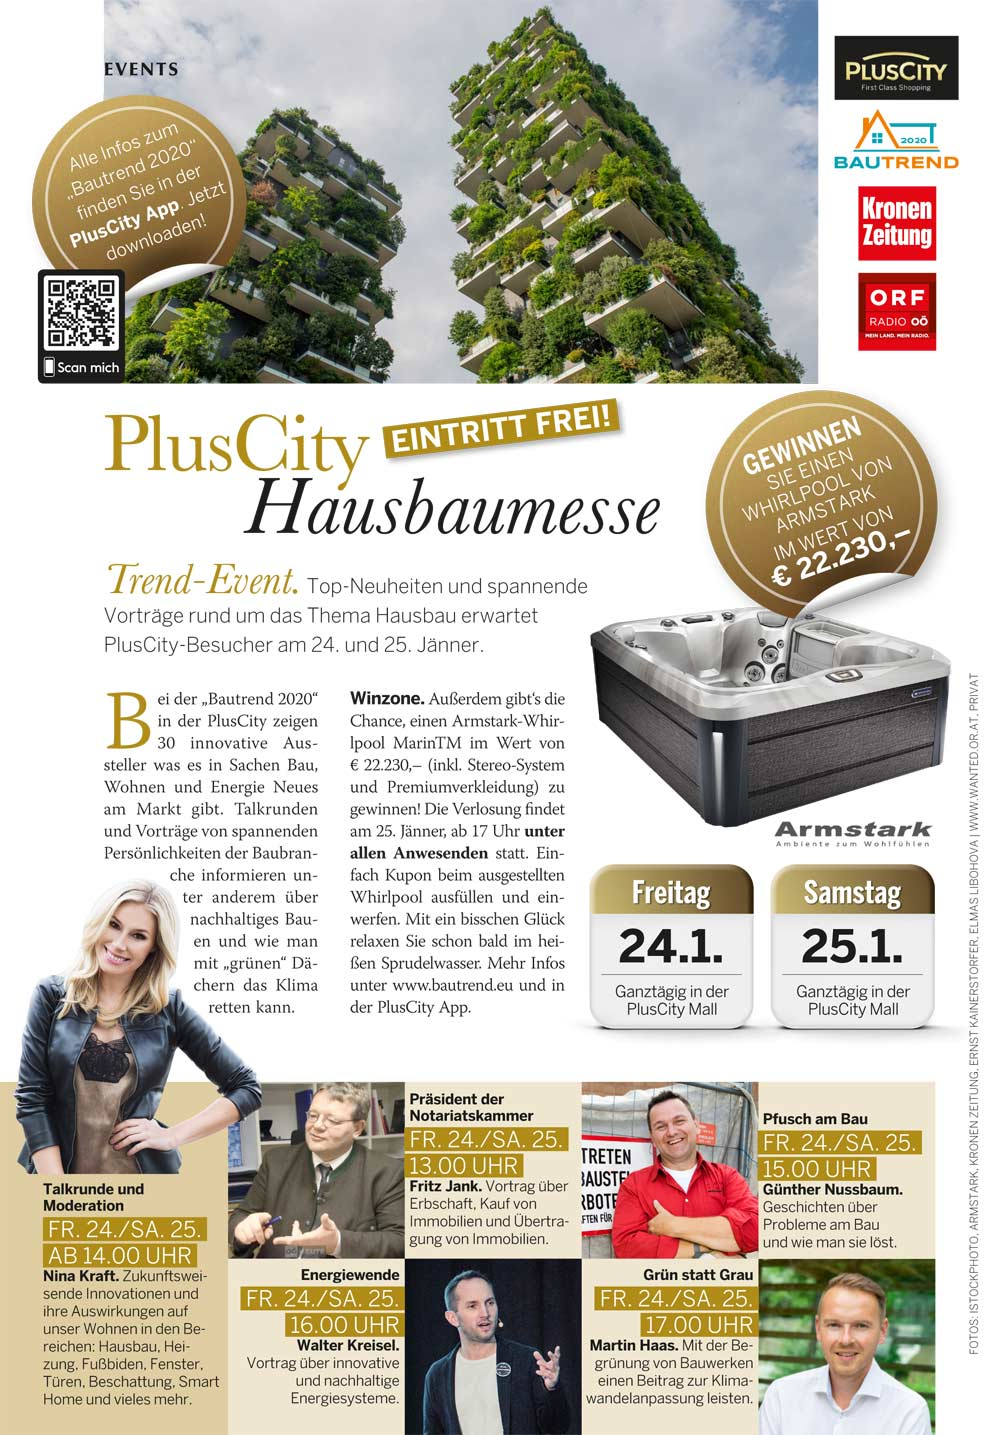 Bautrend Flyer Plus City